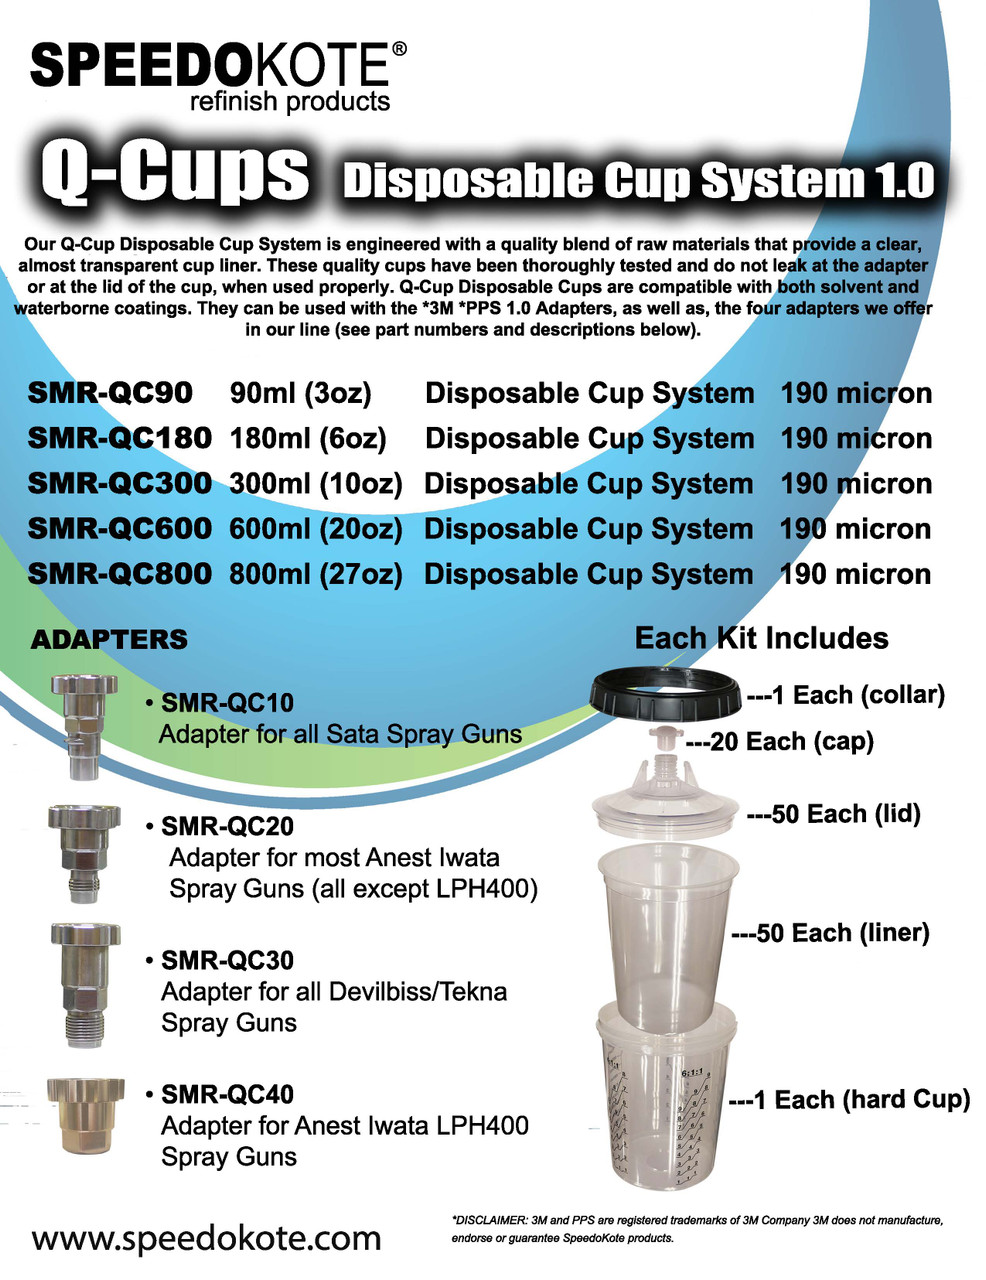 Speedokote Q-Cup 90ml Disposable Liner, Cup System, 190 micron, Requires Adapter